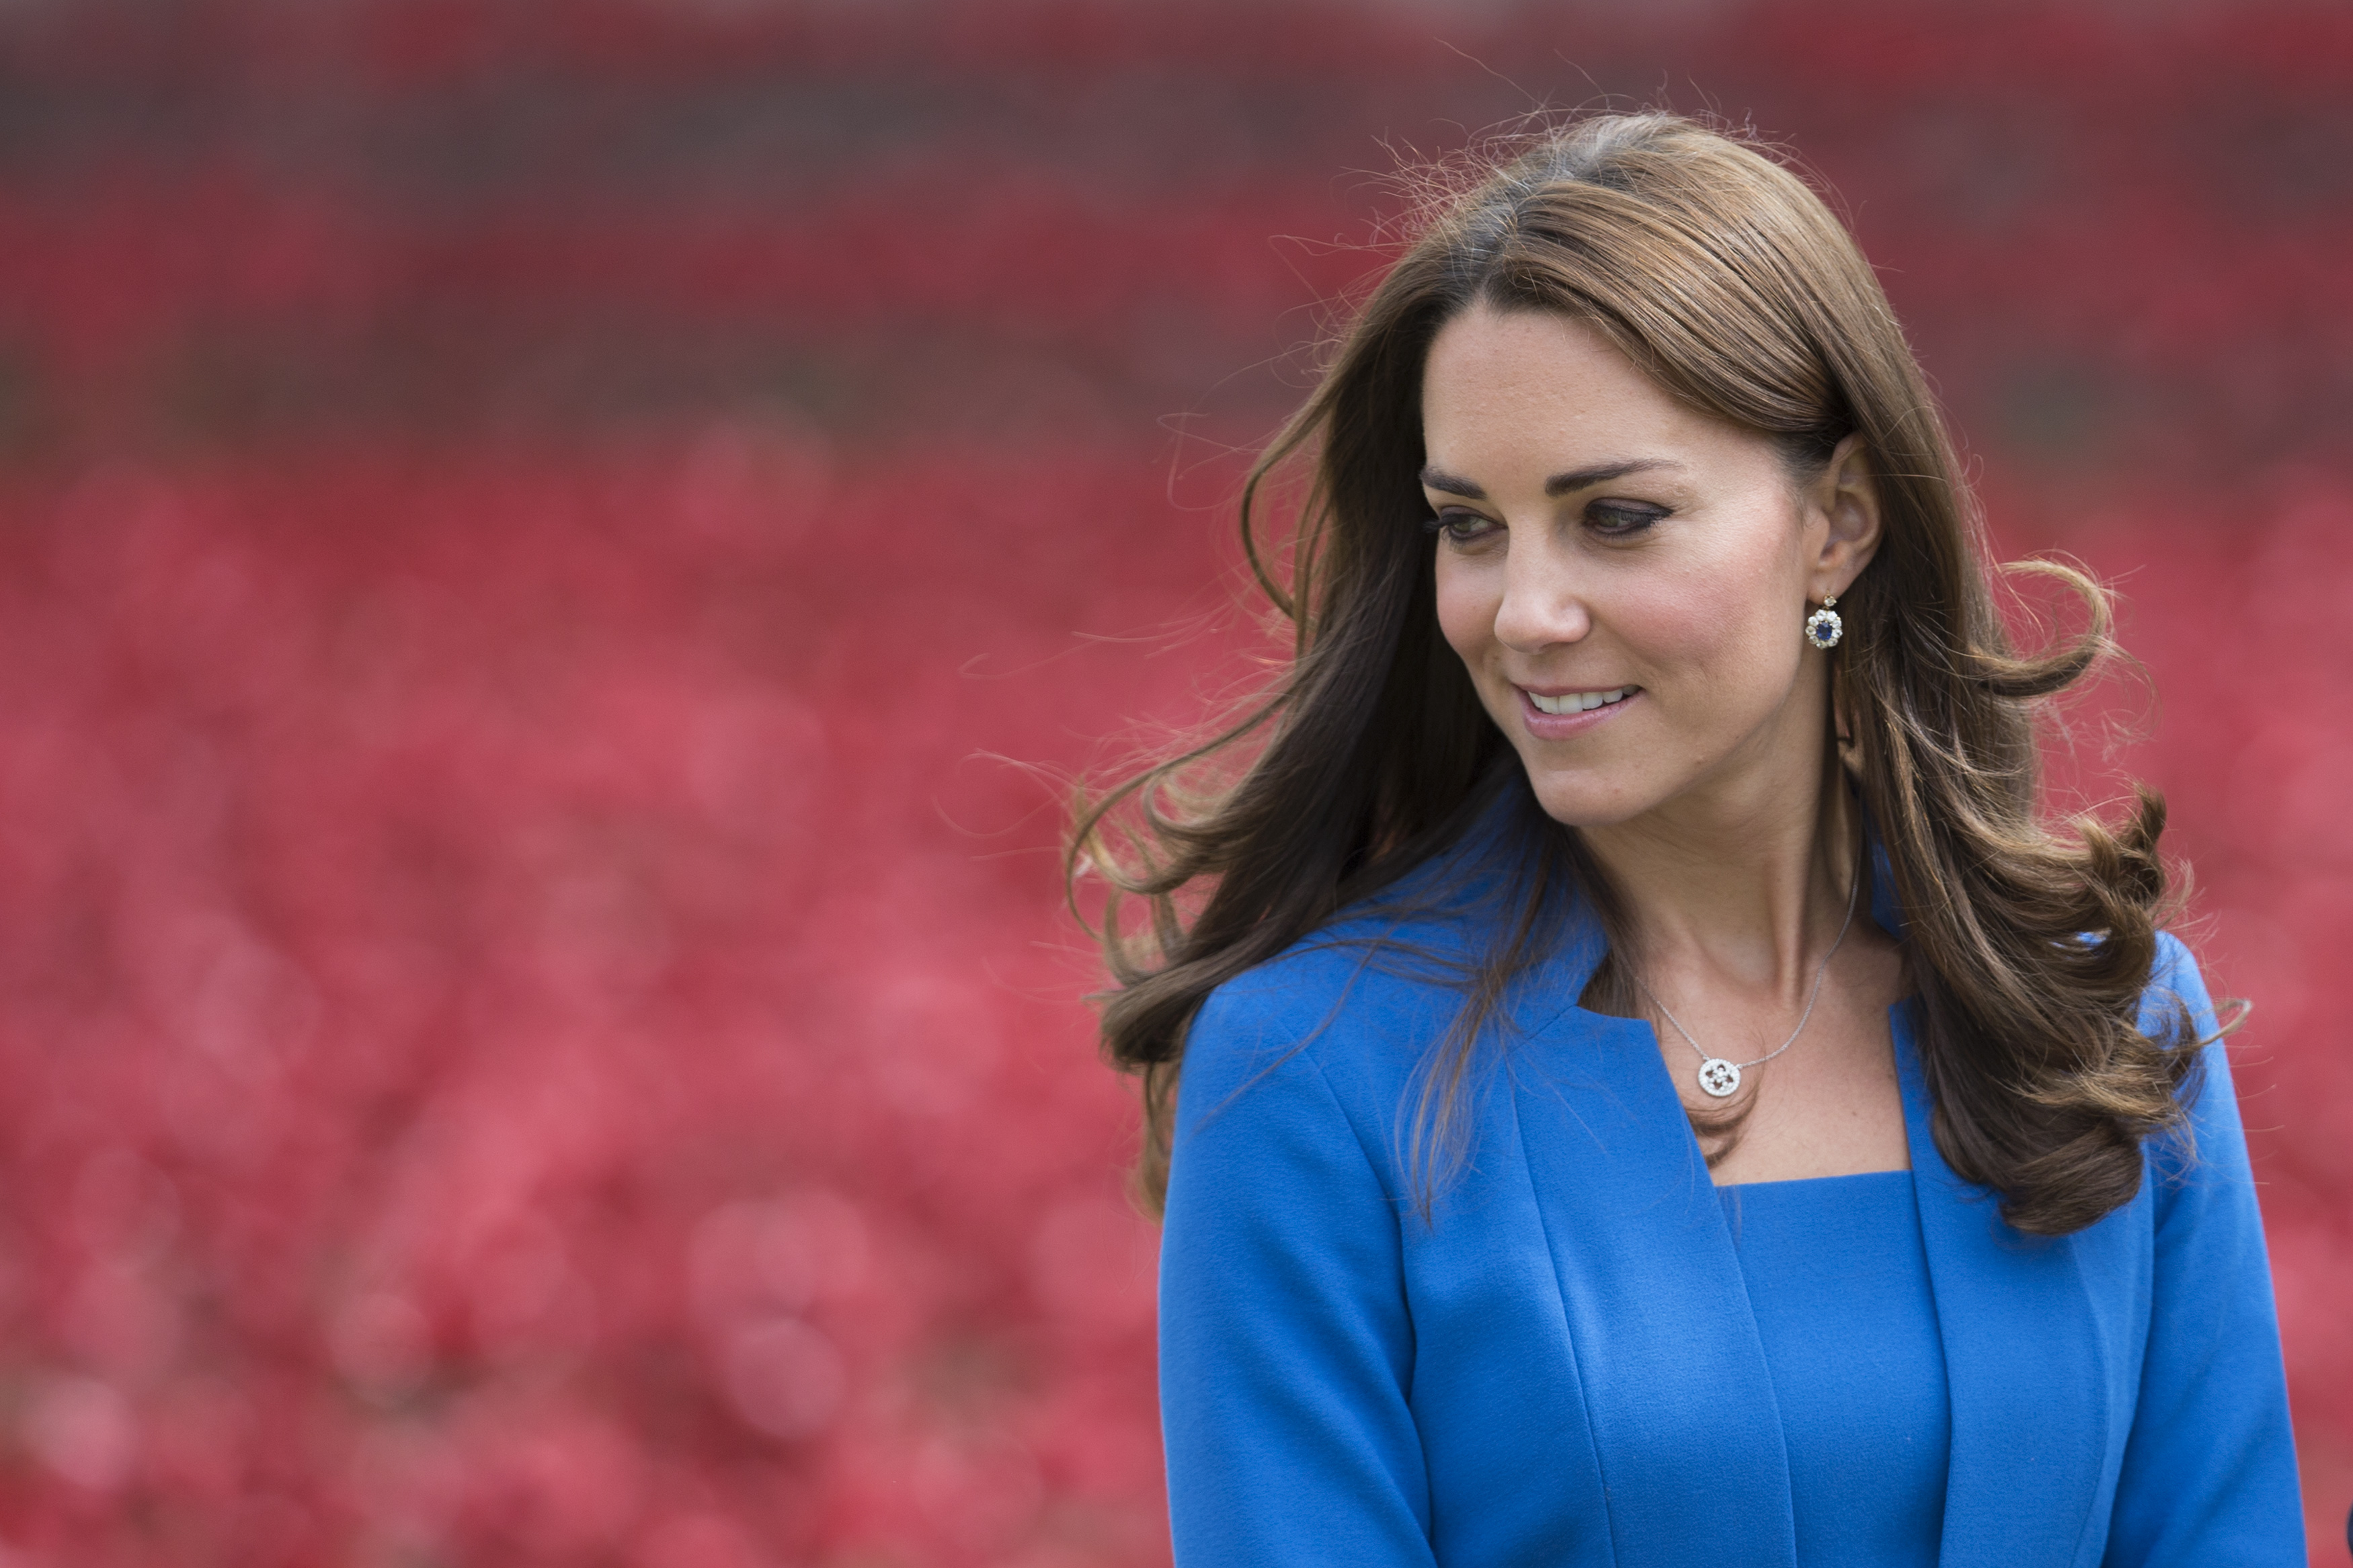 Kate Middleton Wallpaper 5   3500 X 2333 stmednet 3500x2333